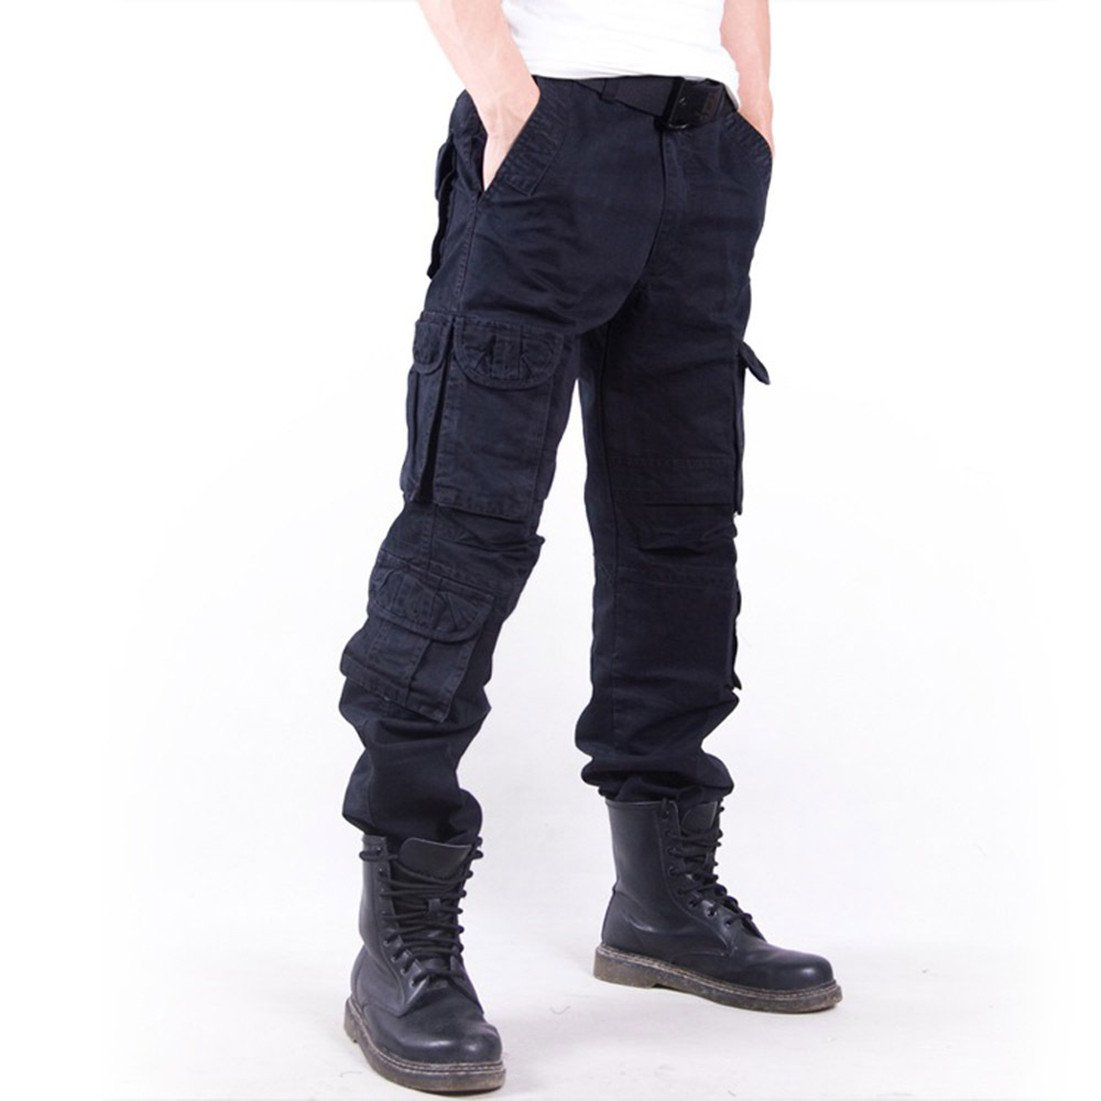 Cargo Trousers, Men's Tactical Combat Cargo Work Army Trousers Casual Military Long Workout Pants Casual Walking Breathable Sports Bottom Slacks HDH